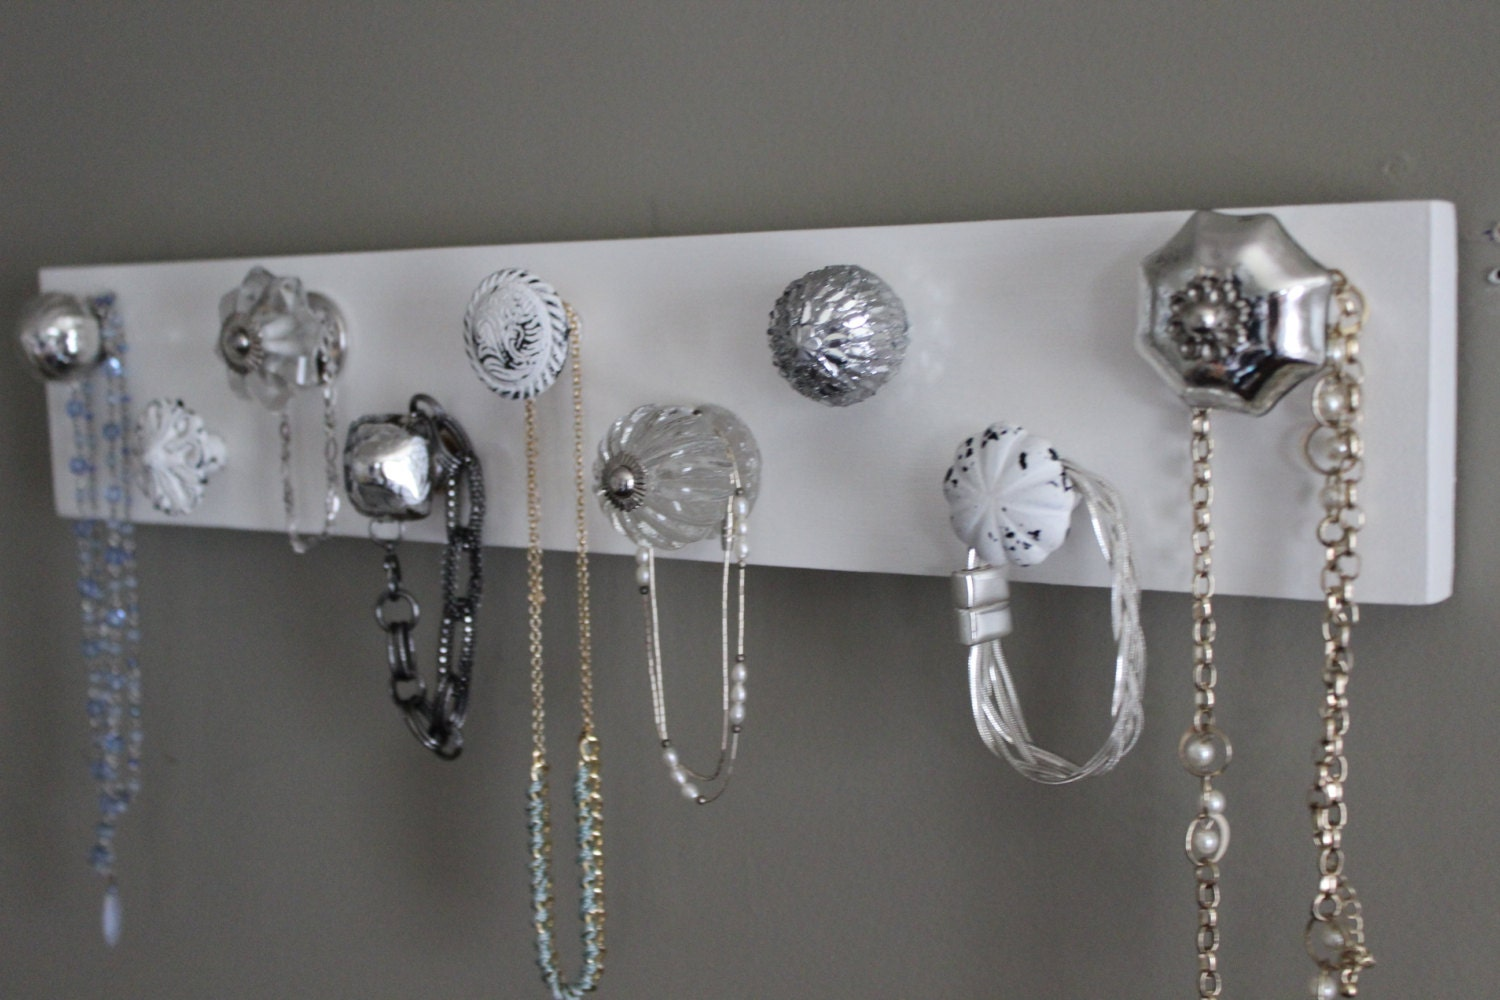 Jewelry organizer 9 knob necklace holder jewlery organizer for Decor jewelry